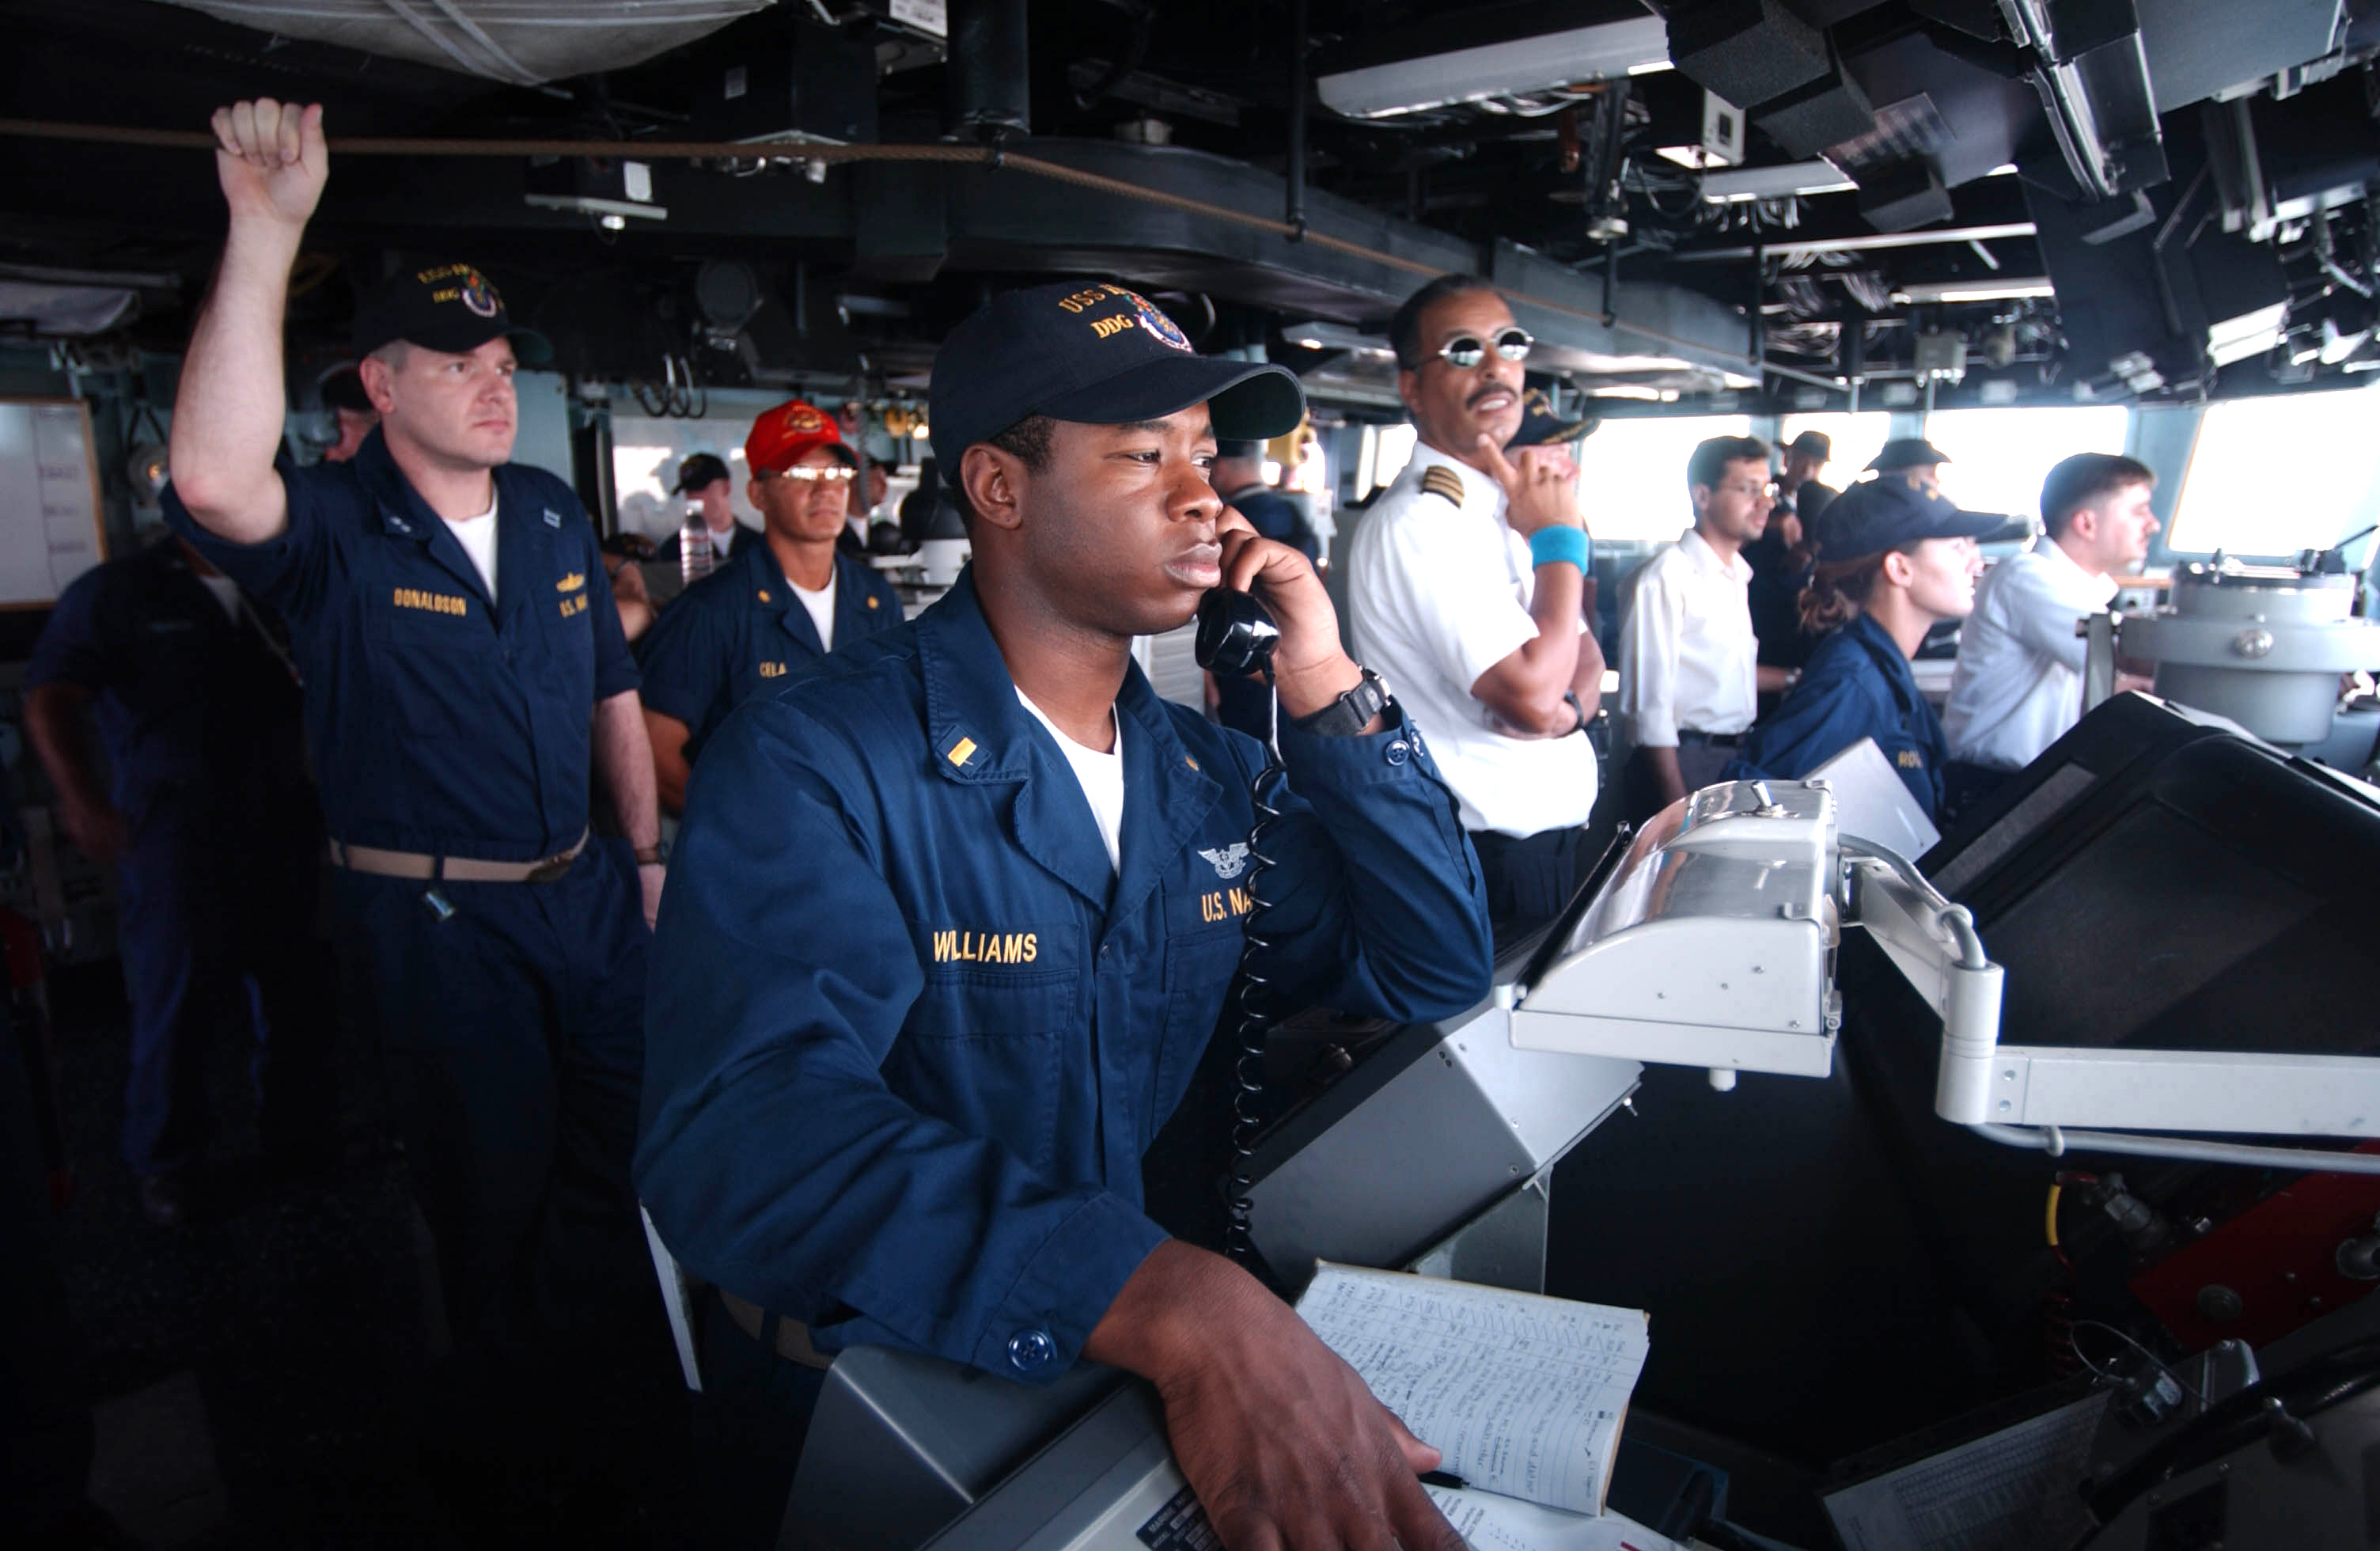 Navy Stuff Archives - The Salty Herald